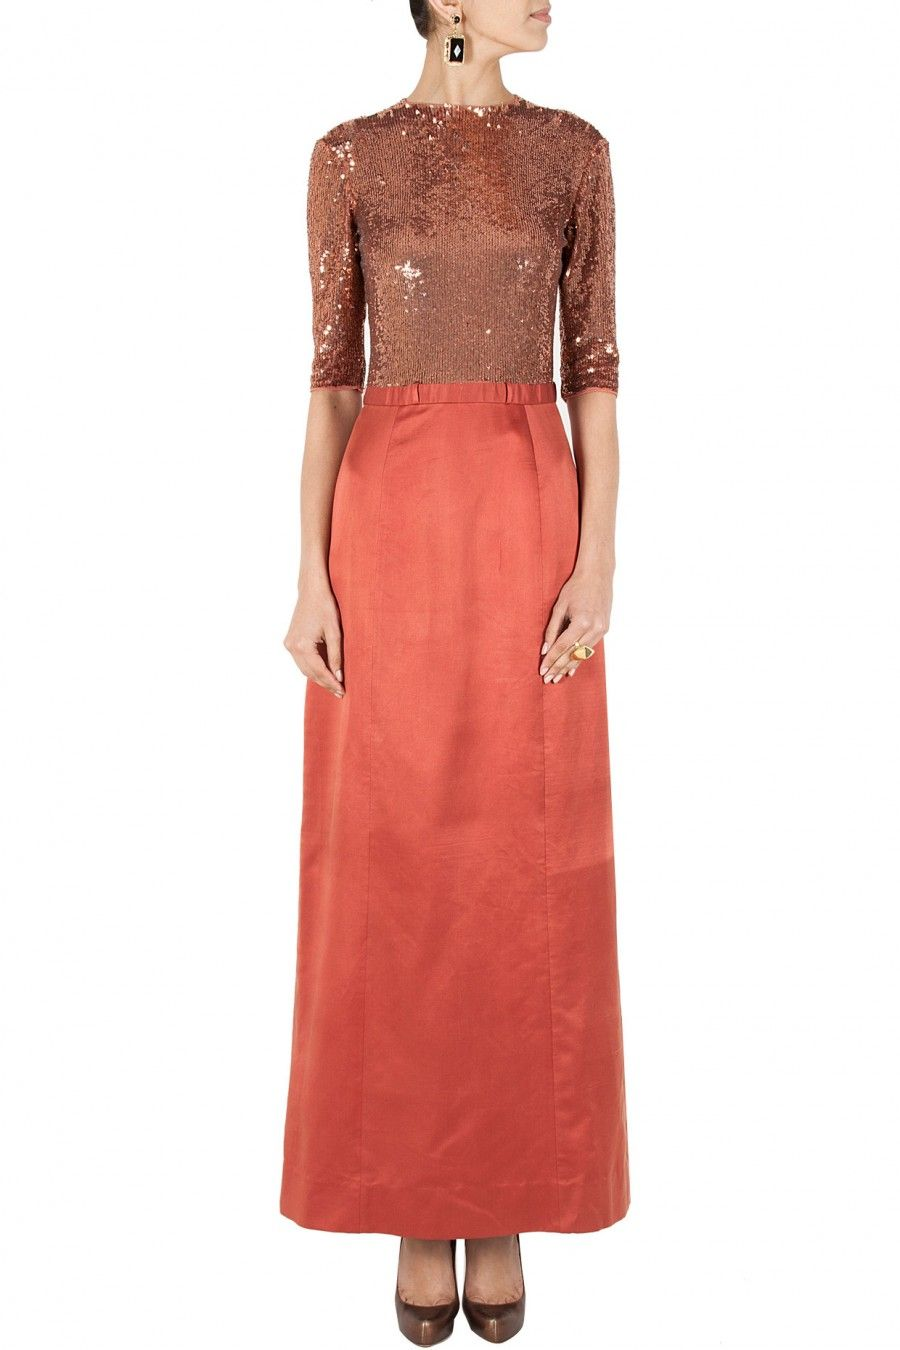 Rose gold long dress with sequined bodice by sailex shop now at